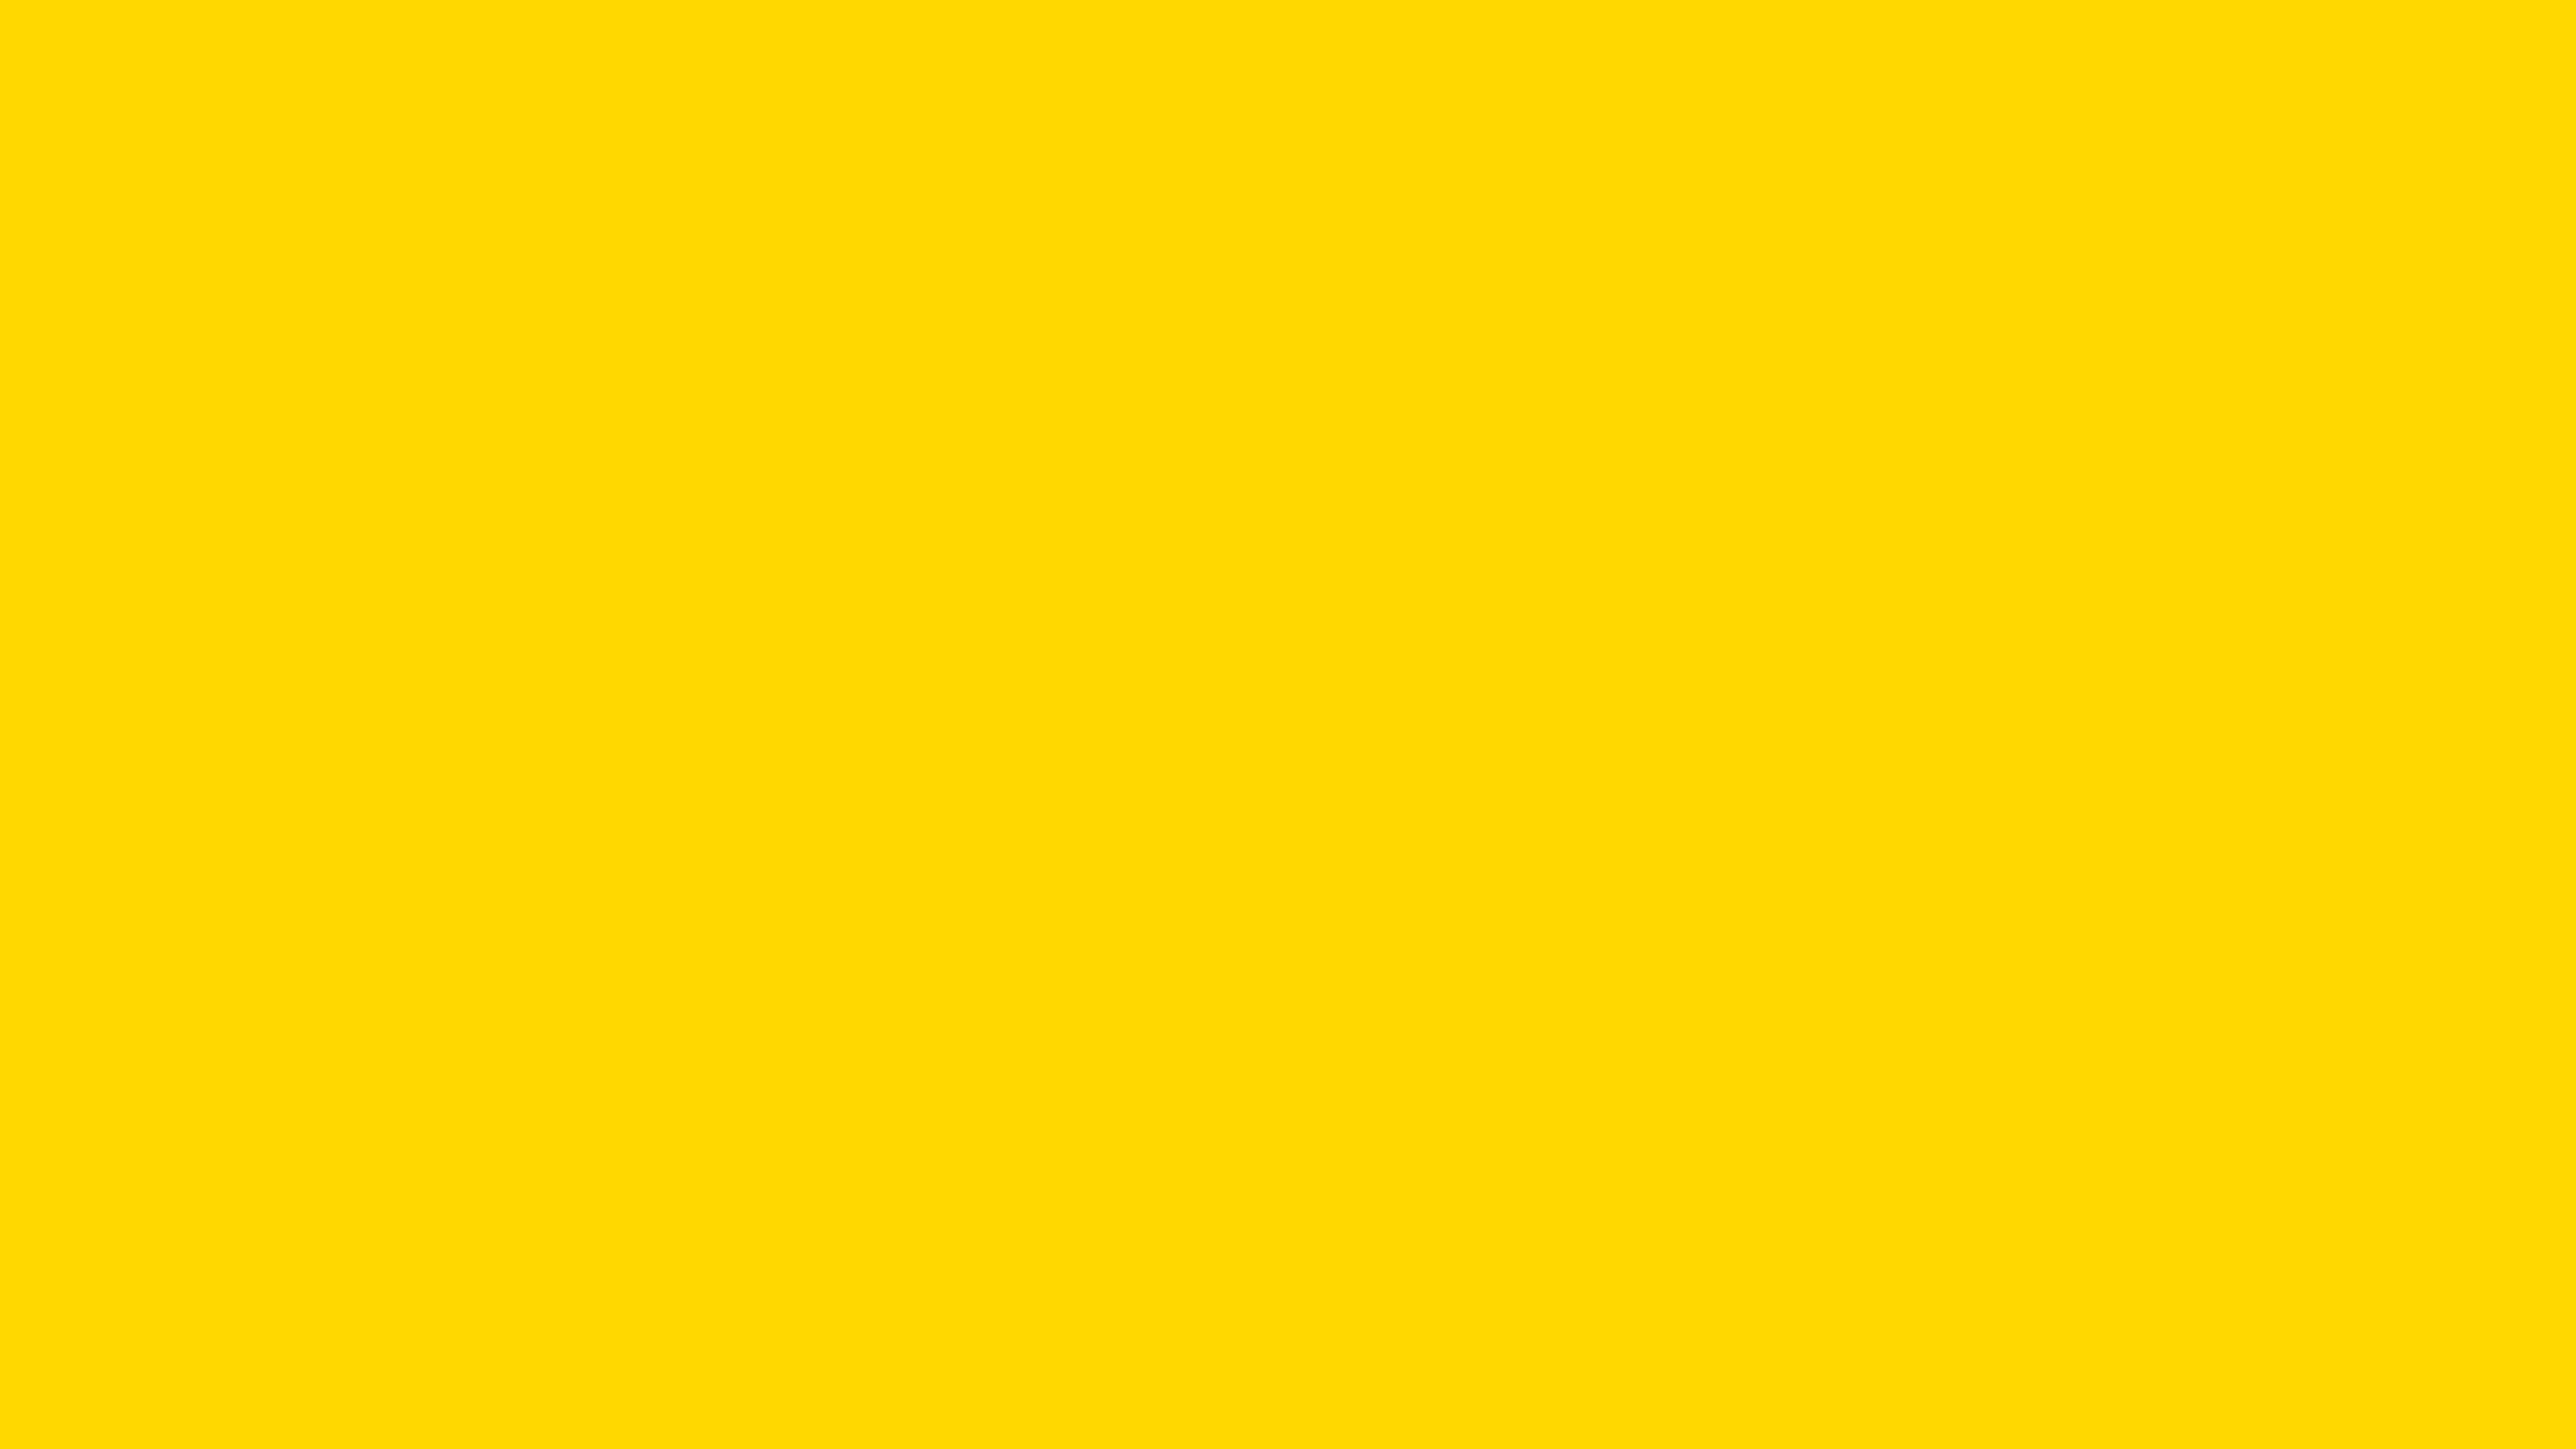 3840x2160 School Bus Yellow Solid Color Background